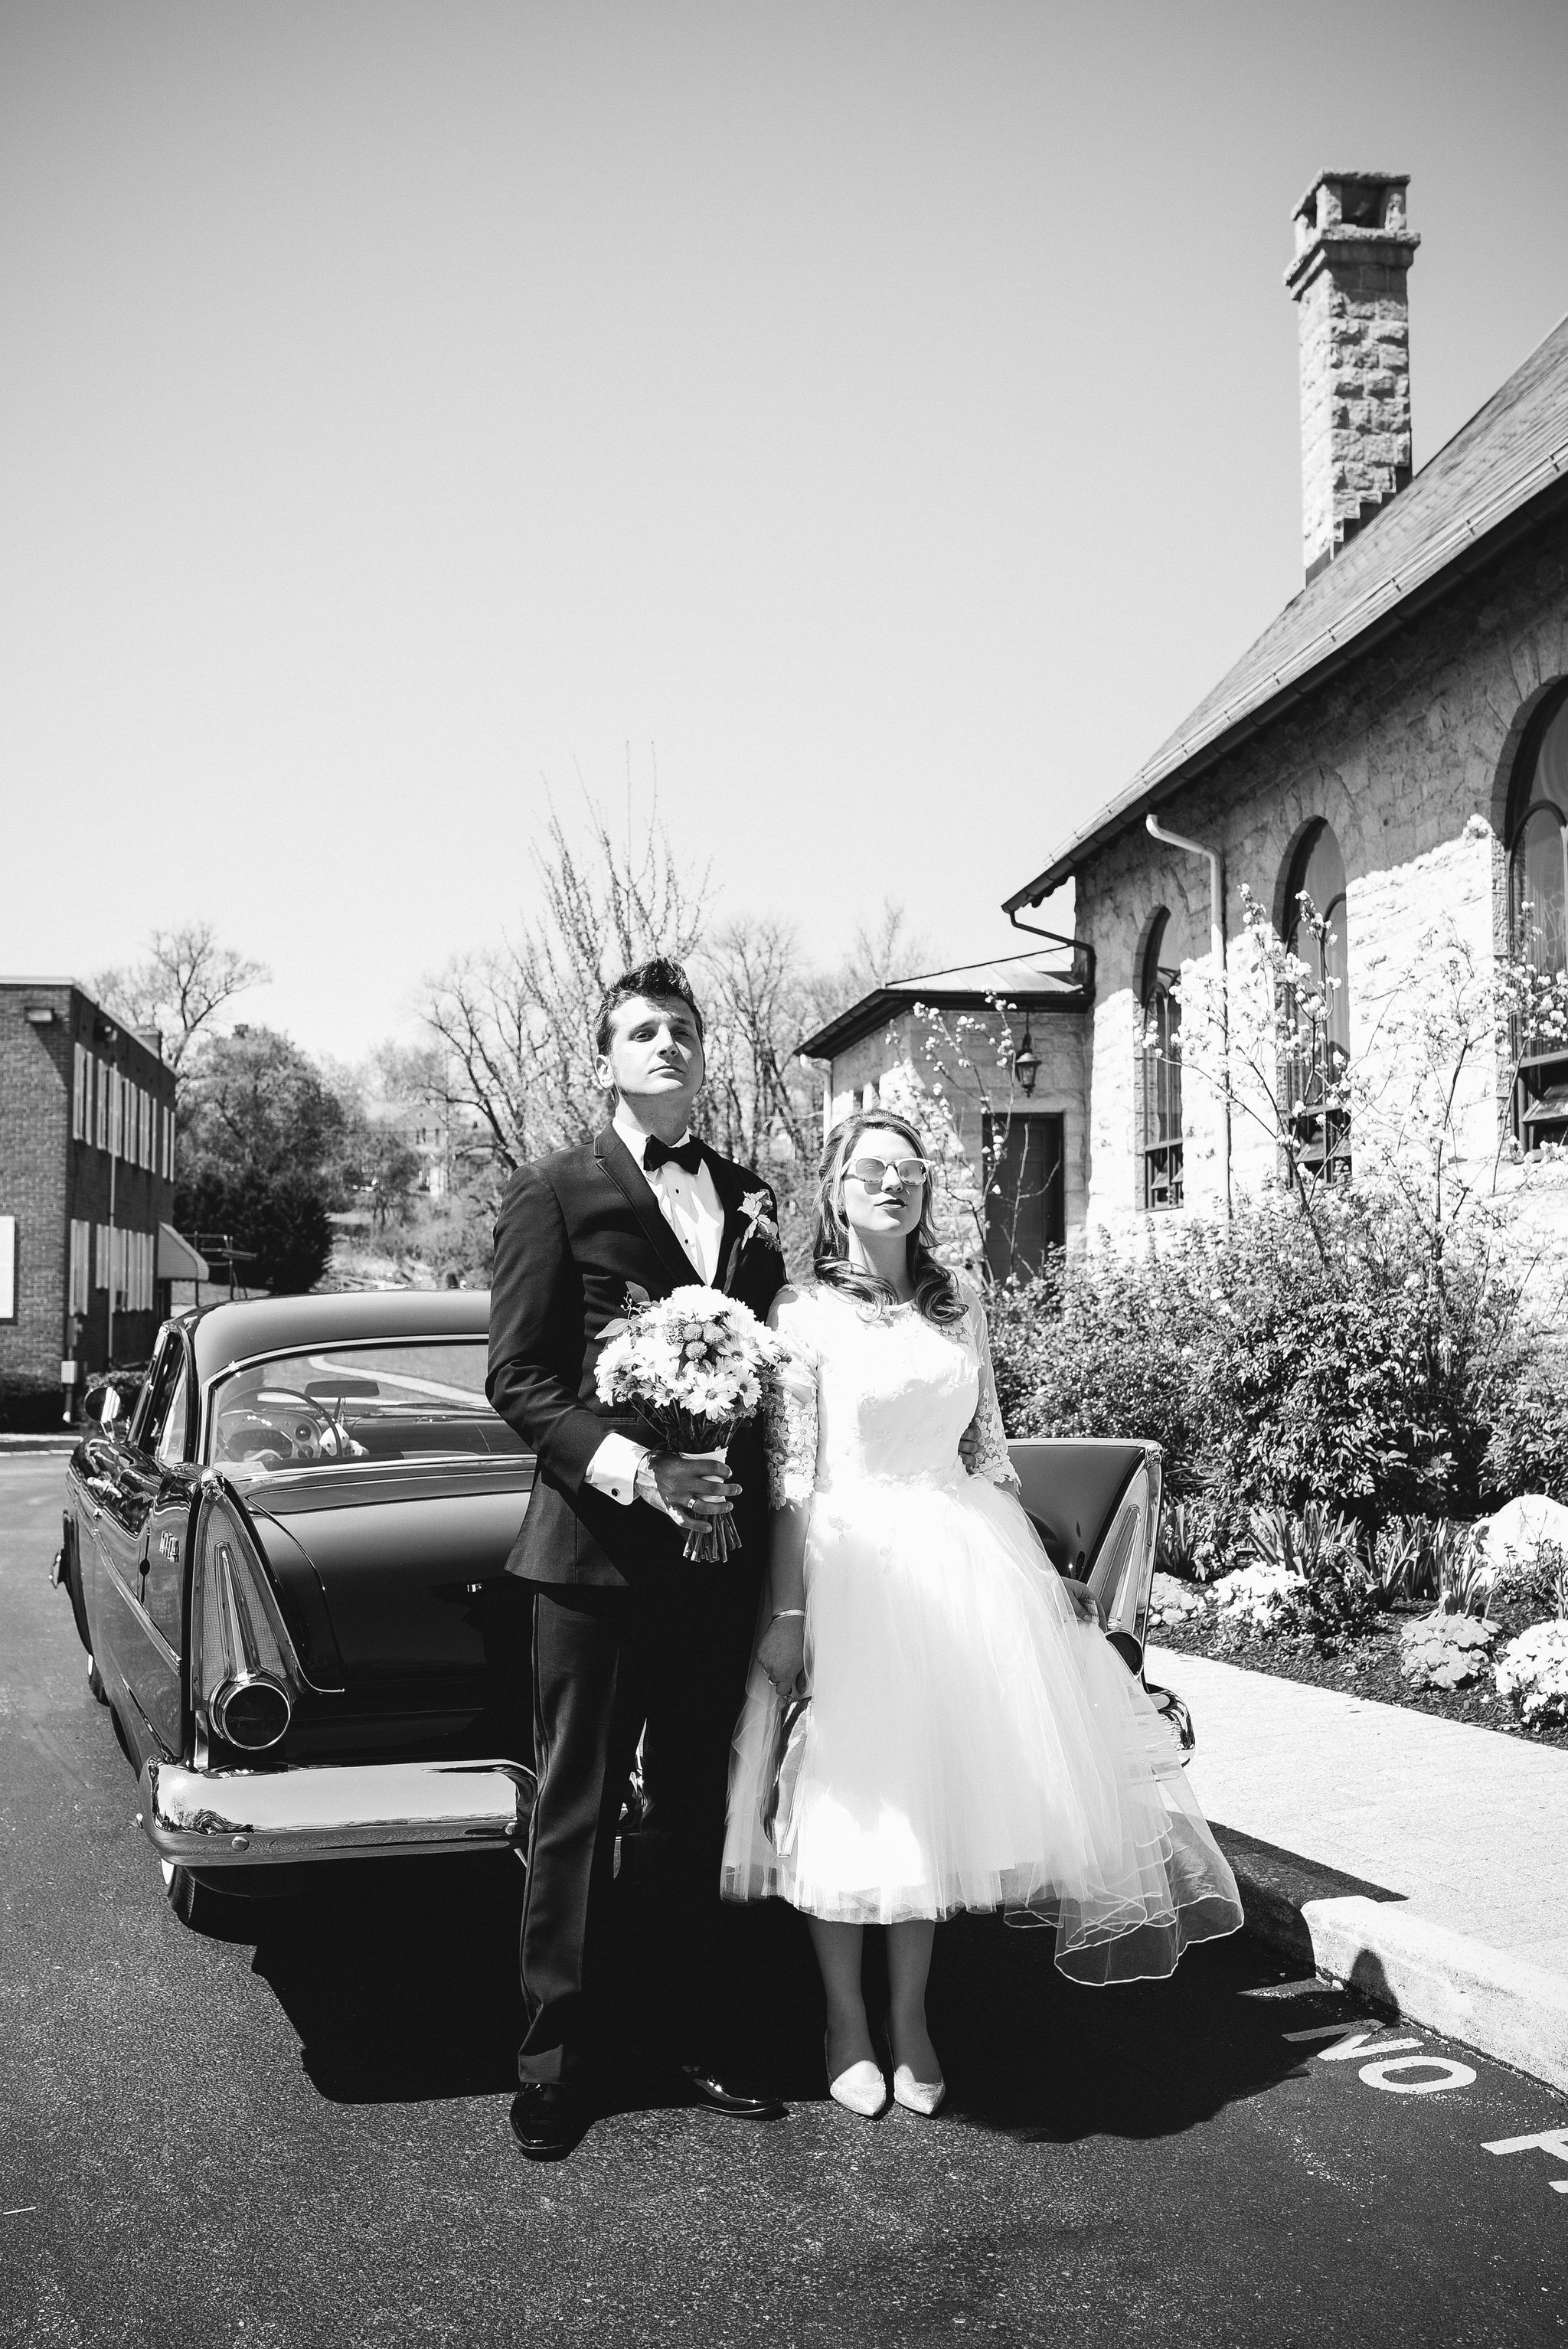 Baltimore, Church Wedding, Maryland Wedding Photographer, Vintage, Classic, 50s Style, Bride and Groom Posing Outside, Fun Photo, Black and White